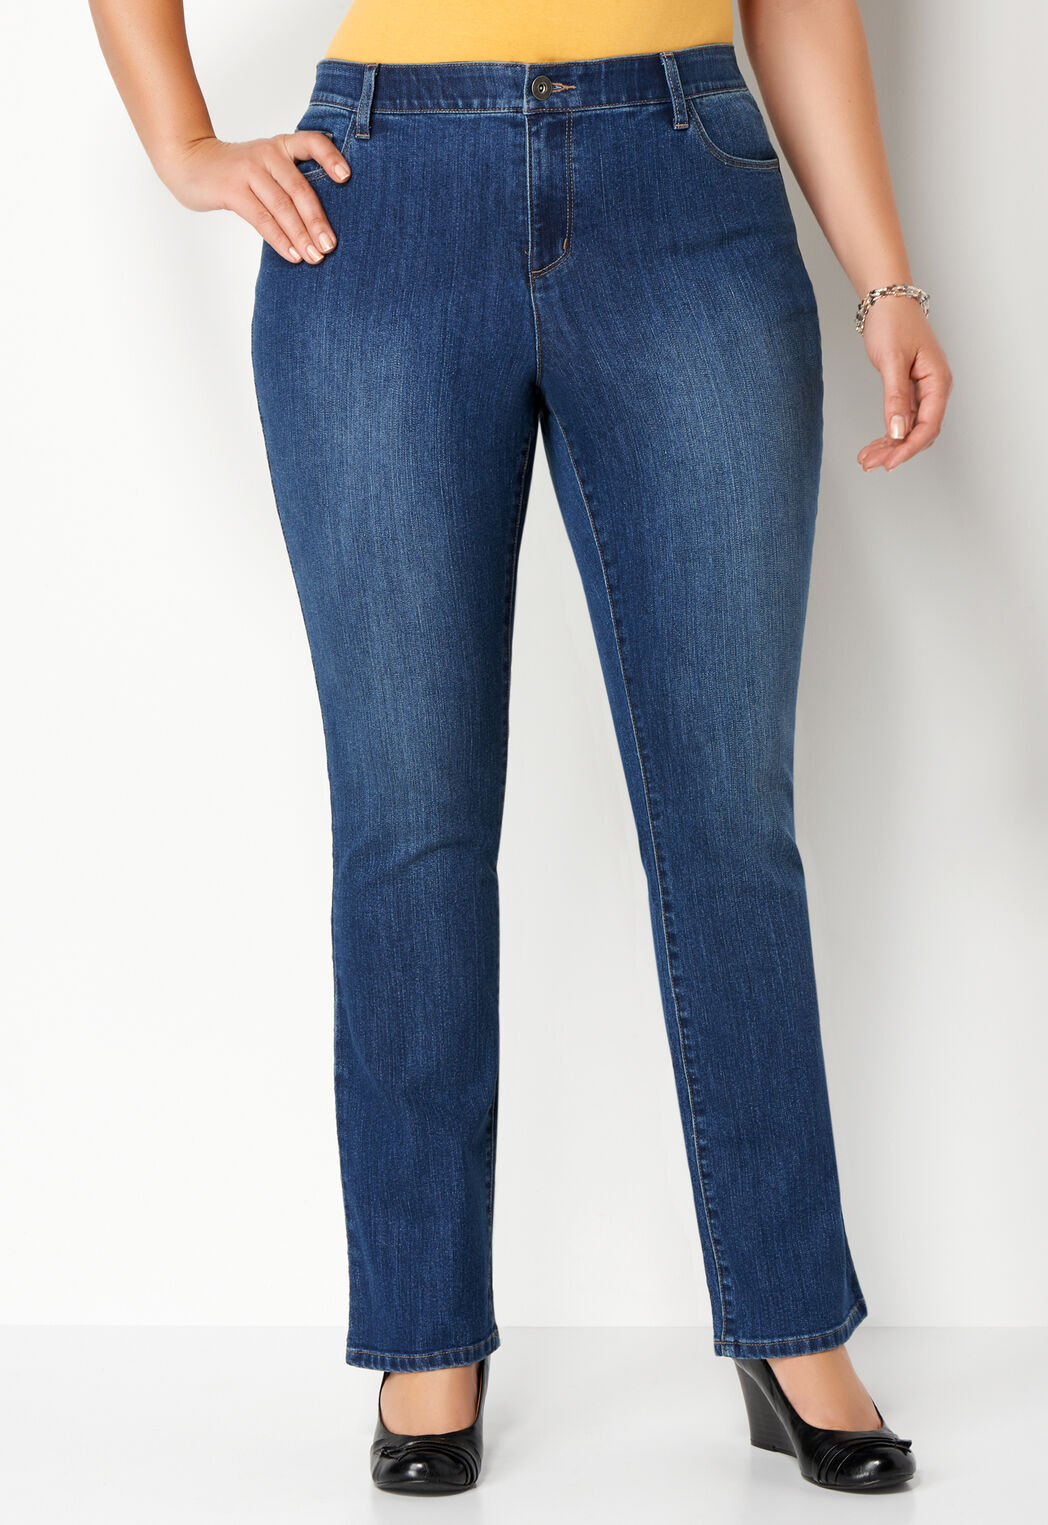 2c8381b99a7 Women s Plus Sized Everyday Denim Plus Size Pant Tall from ...